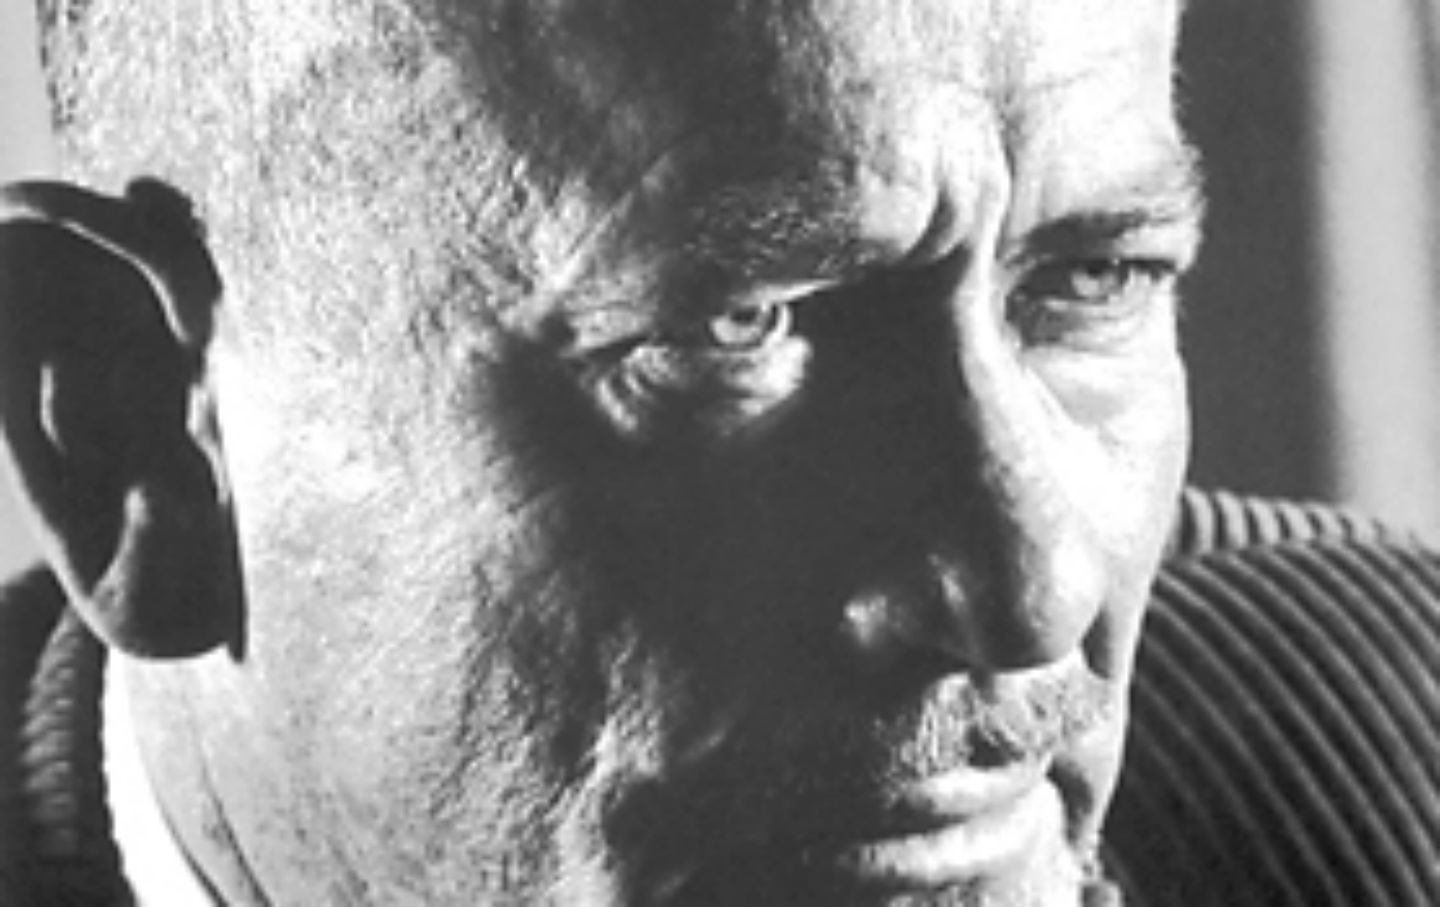 20 1968 john steinbeck dies the nation steinbeck in 1961 nobel foundation